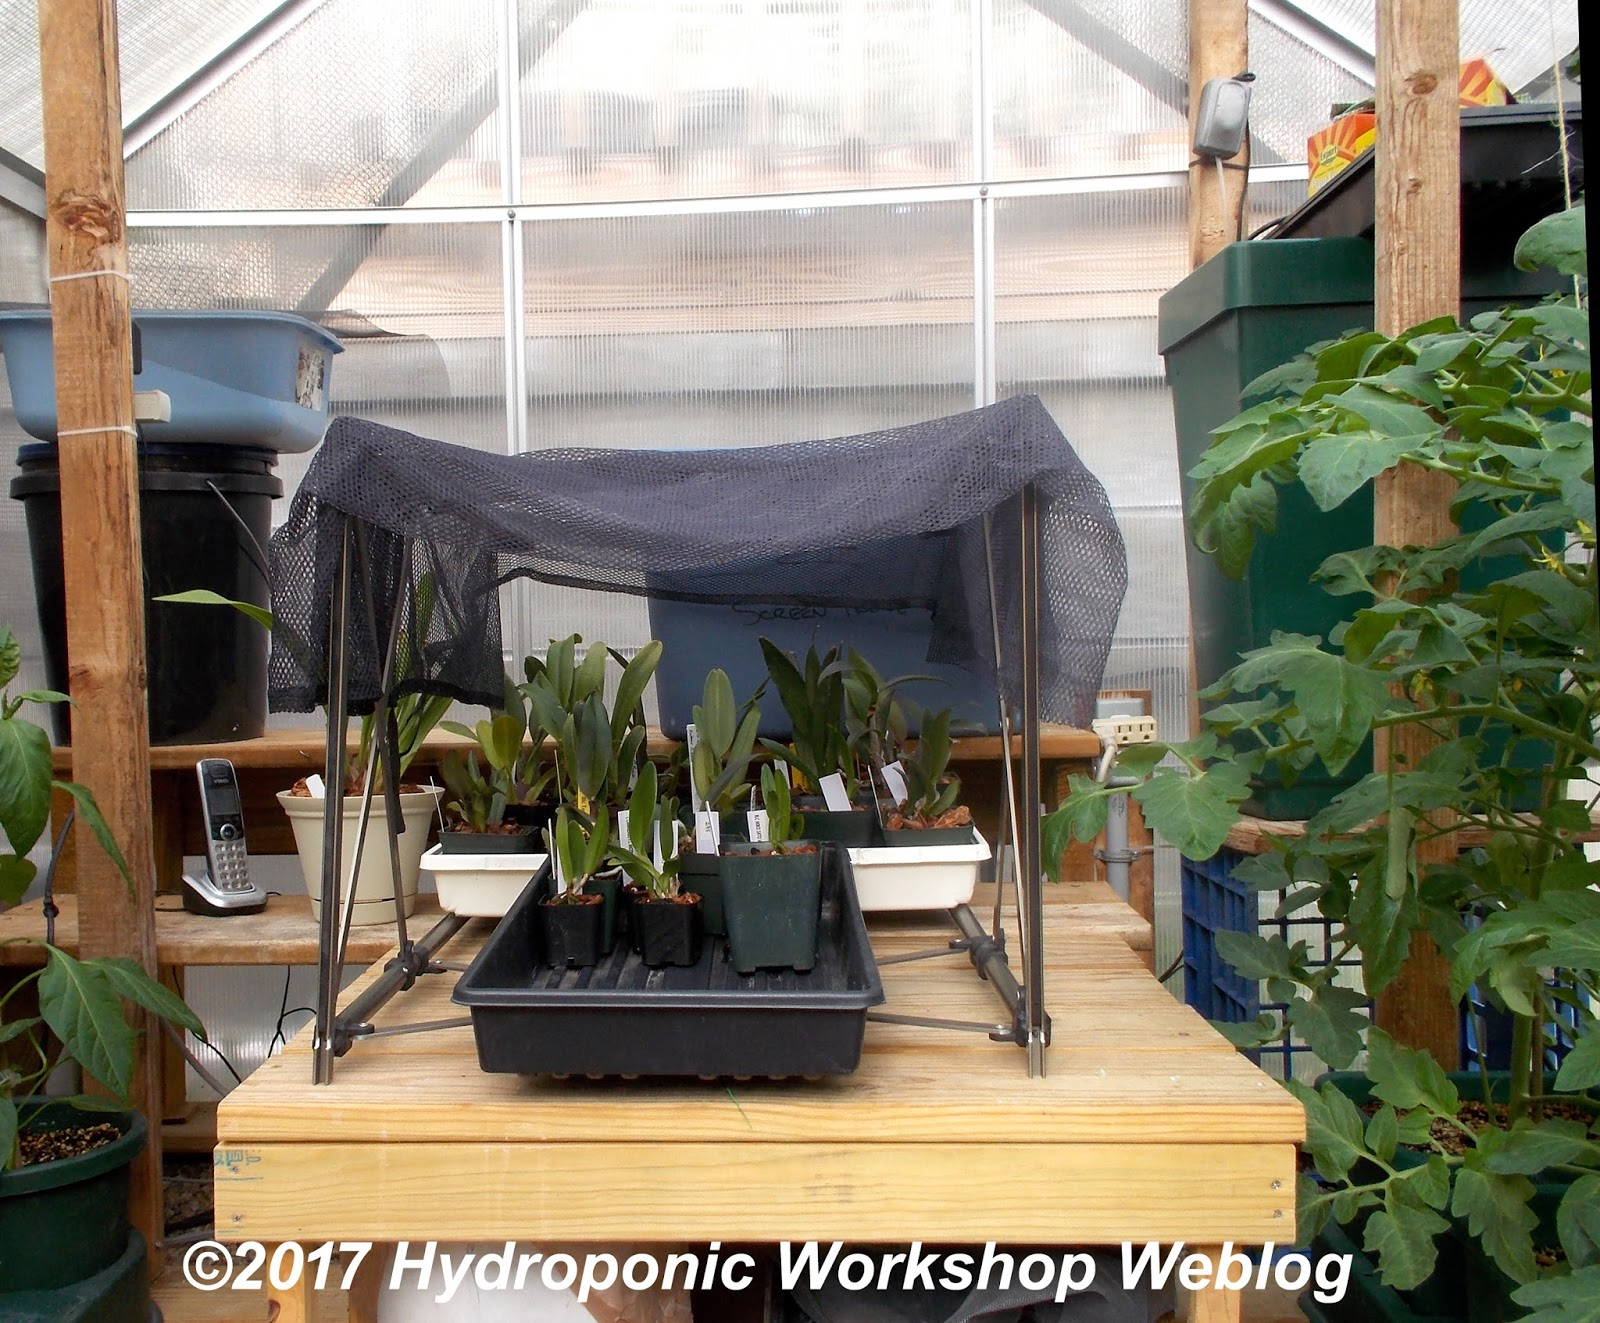 Hydroponic Workshop Journal May 27 2017 Shade For The Orchids